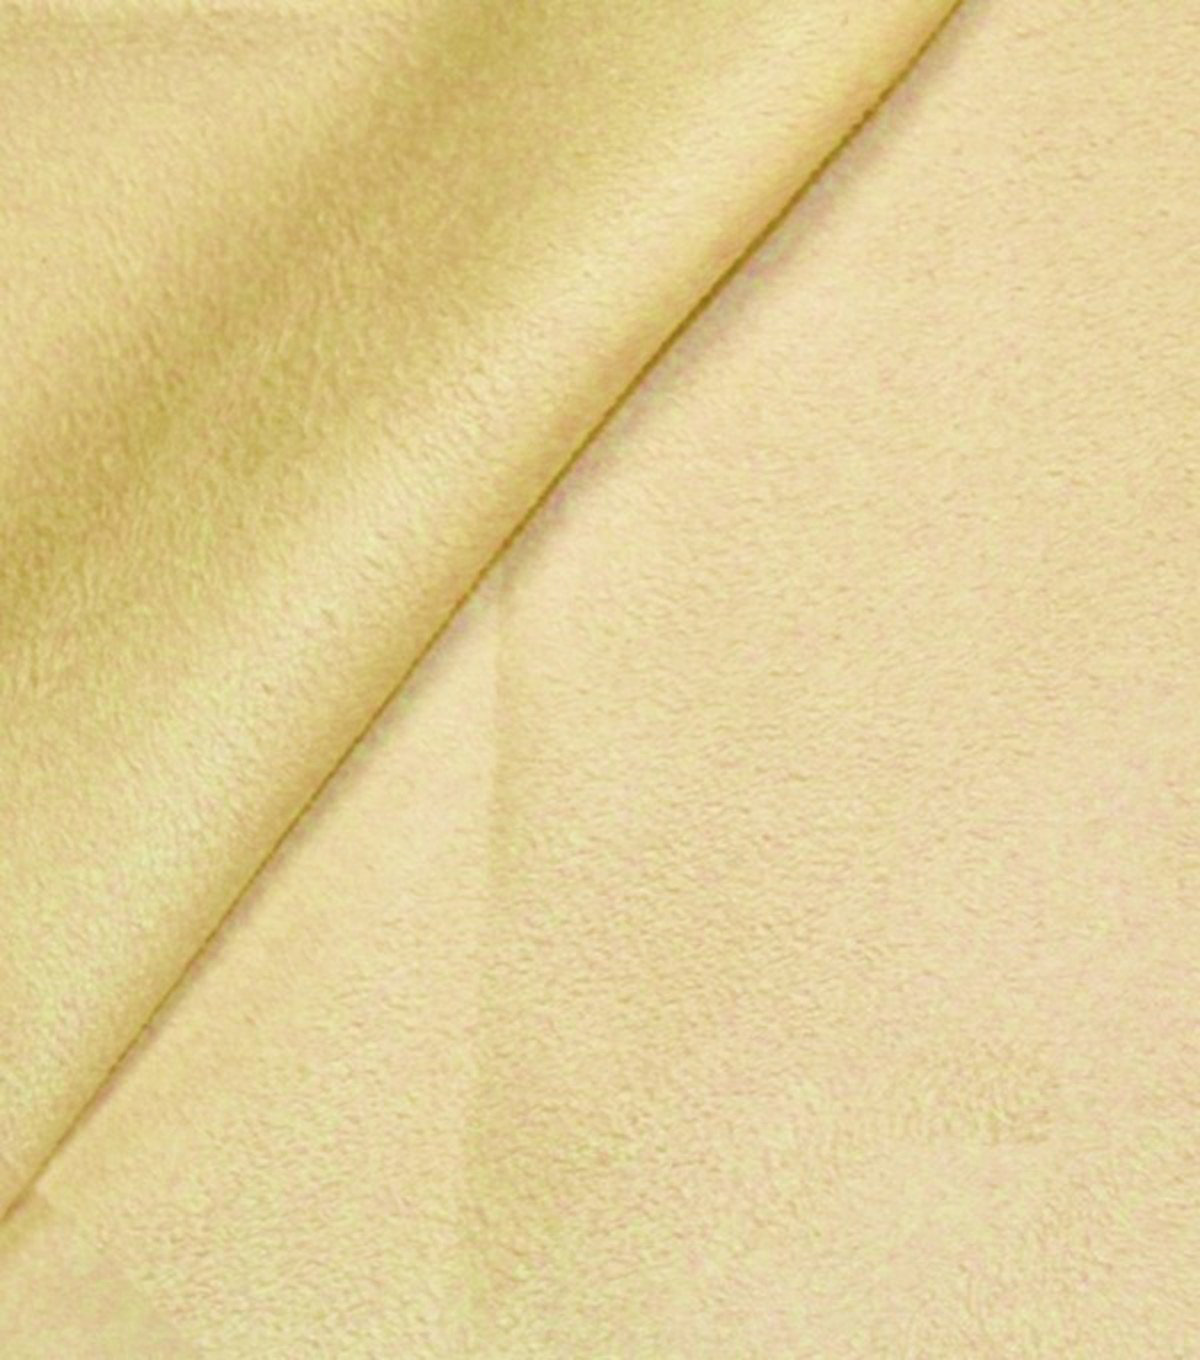 Mardi Gras Plus Brushed Suede Finish Mustard-10yd Bolt